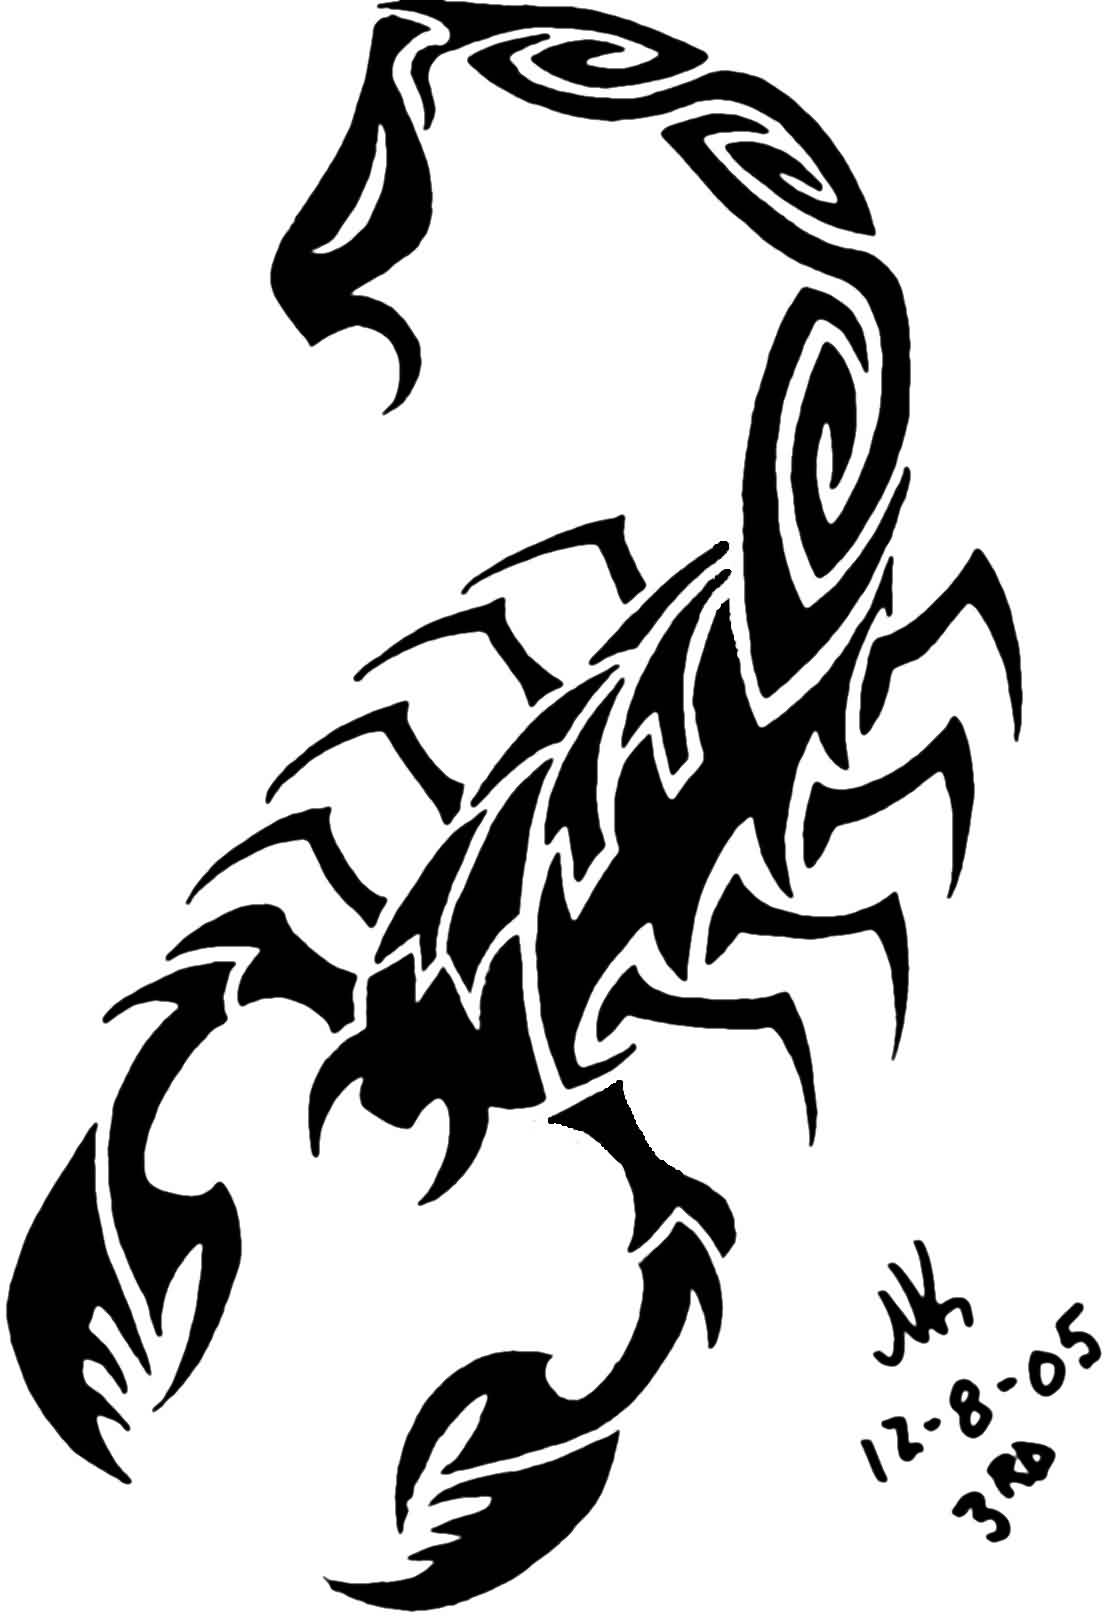 Final Black Scorpion Tattoo Design